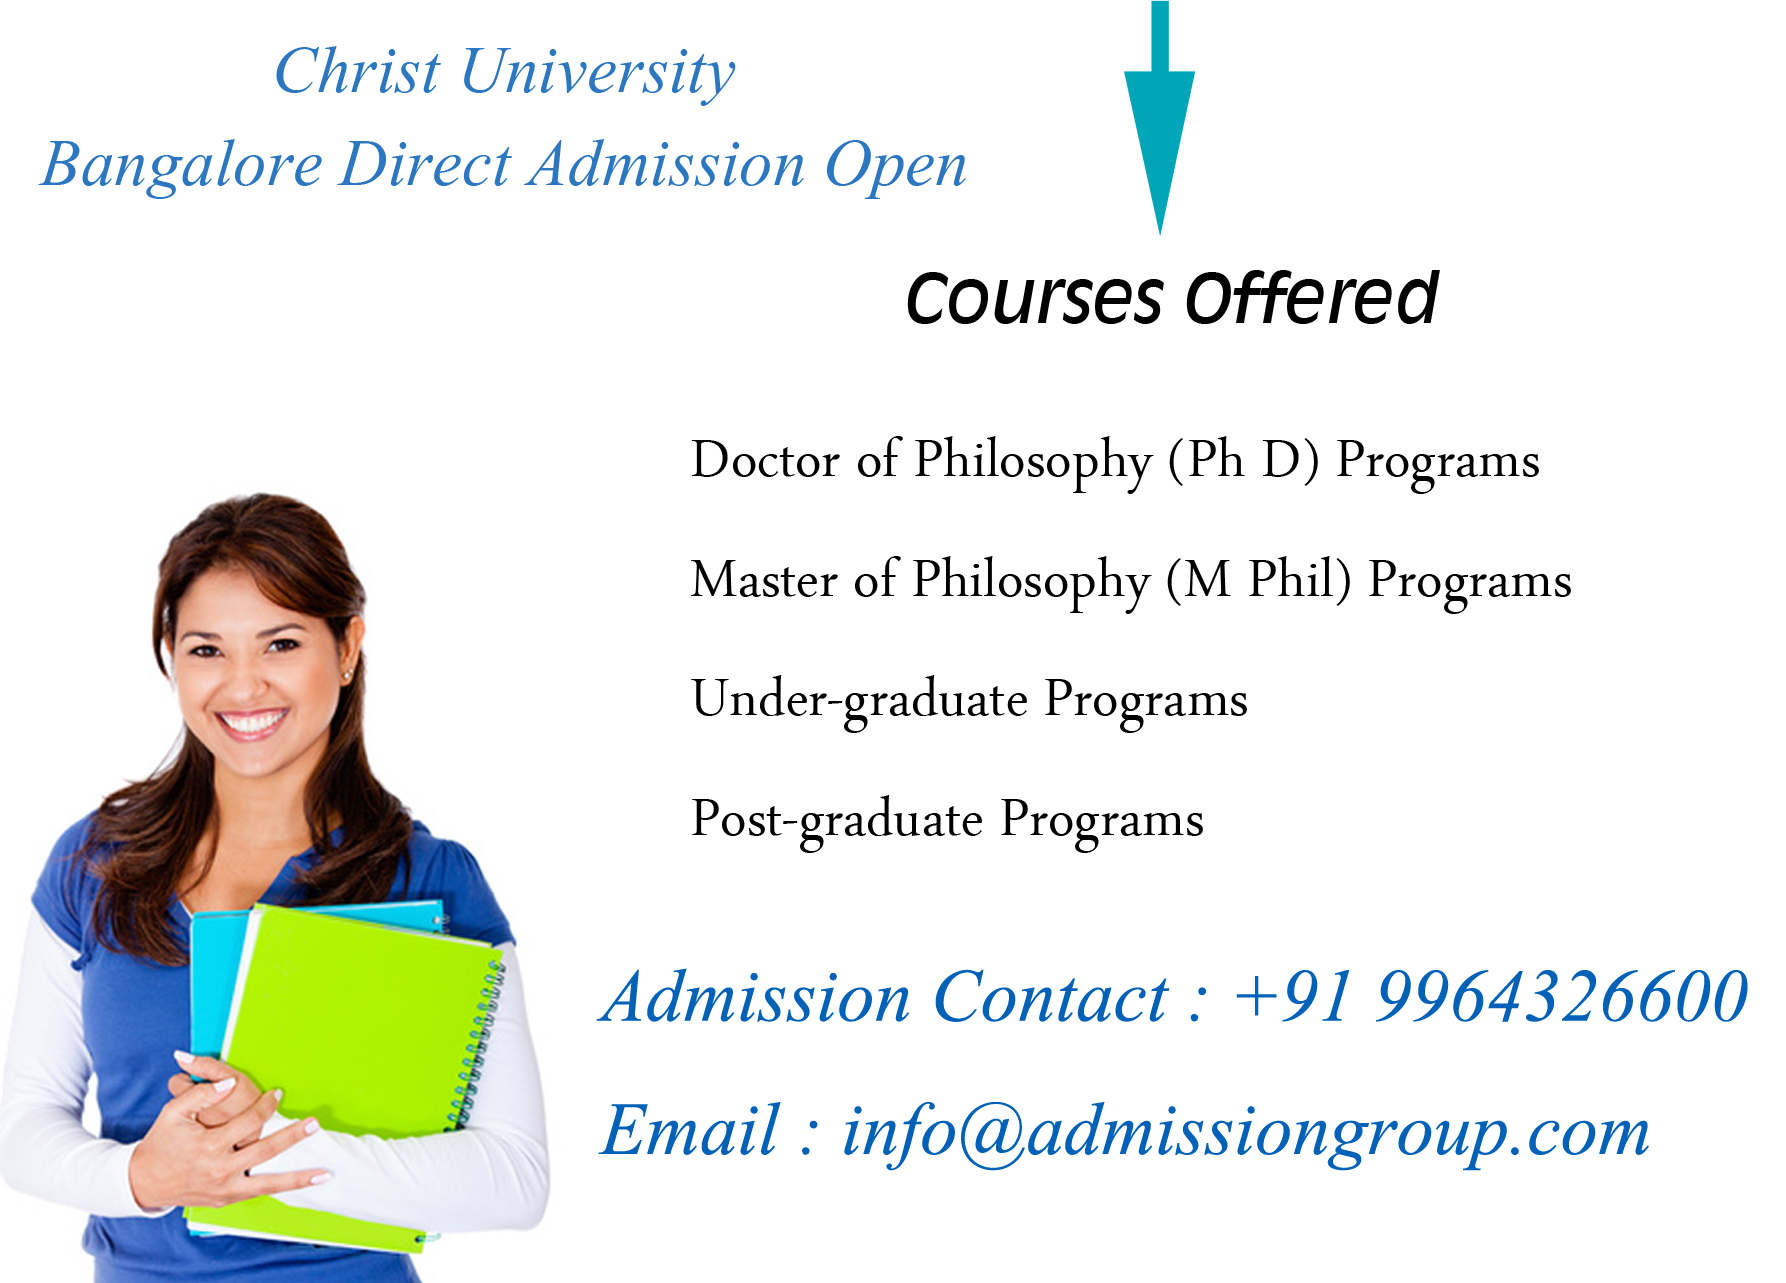 CHRIST UNIVERSITY FEE STRUCTURE - 9964326600